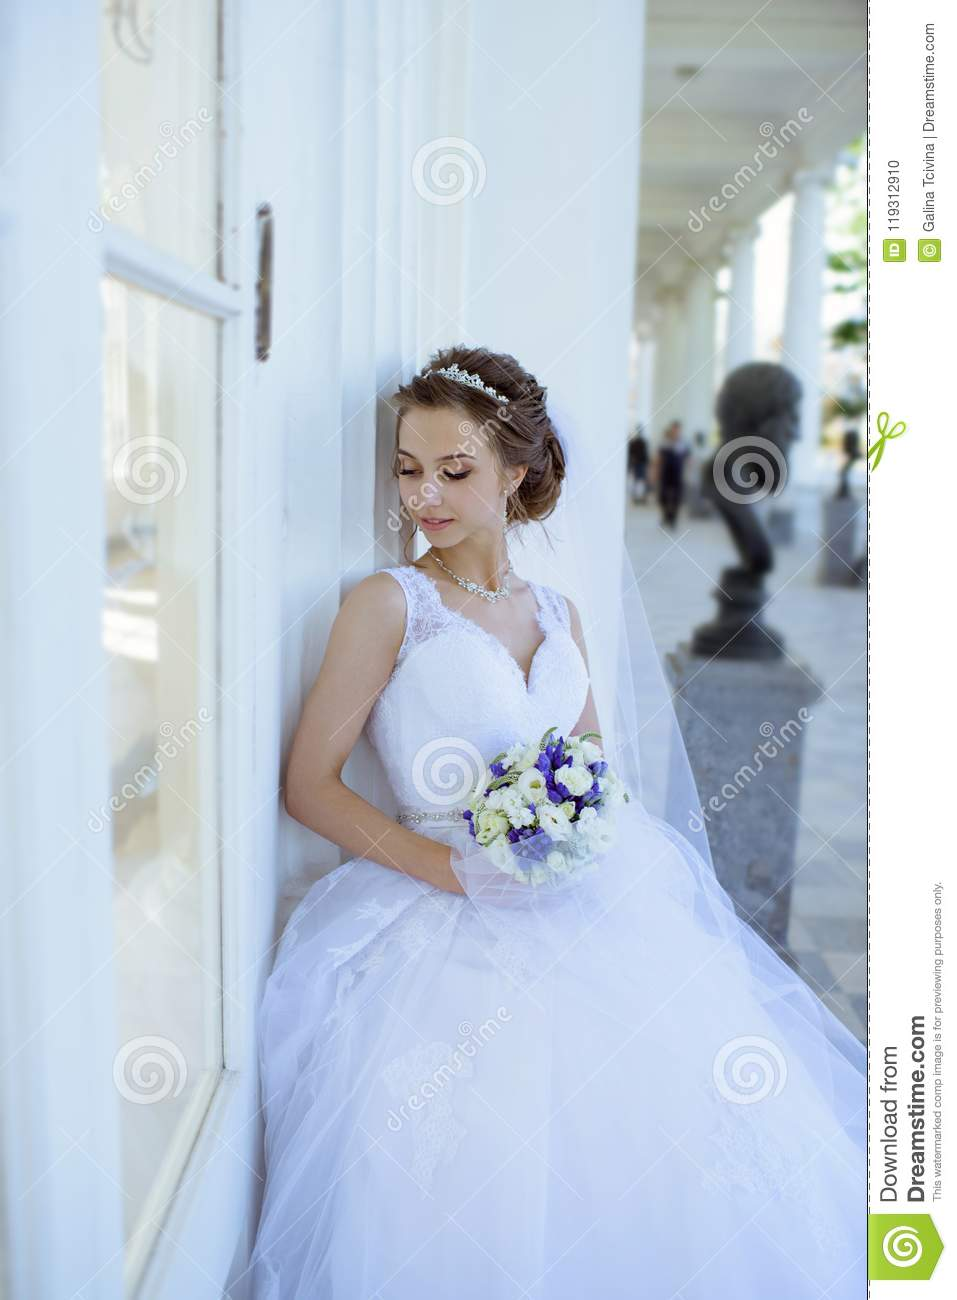 Beauty Bride In Bridal Gown With Bouquet And Lace Veil In The